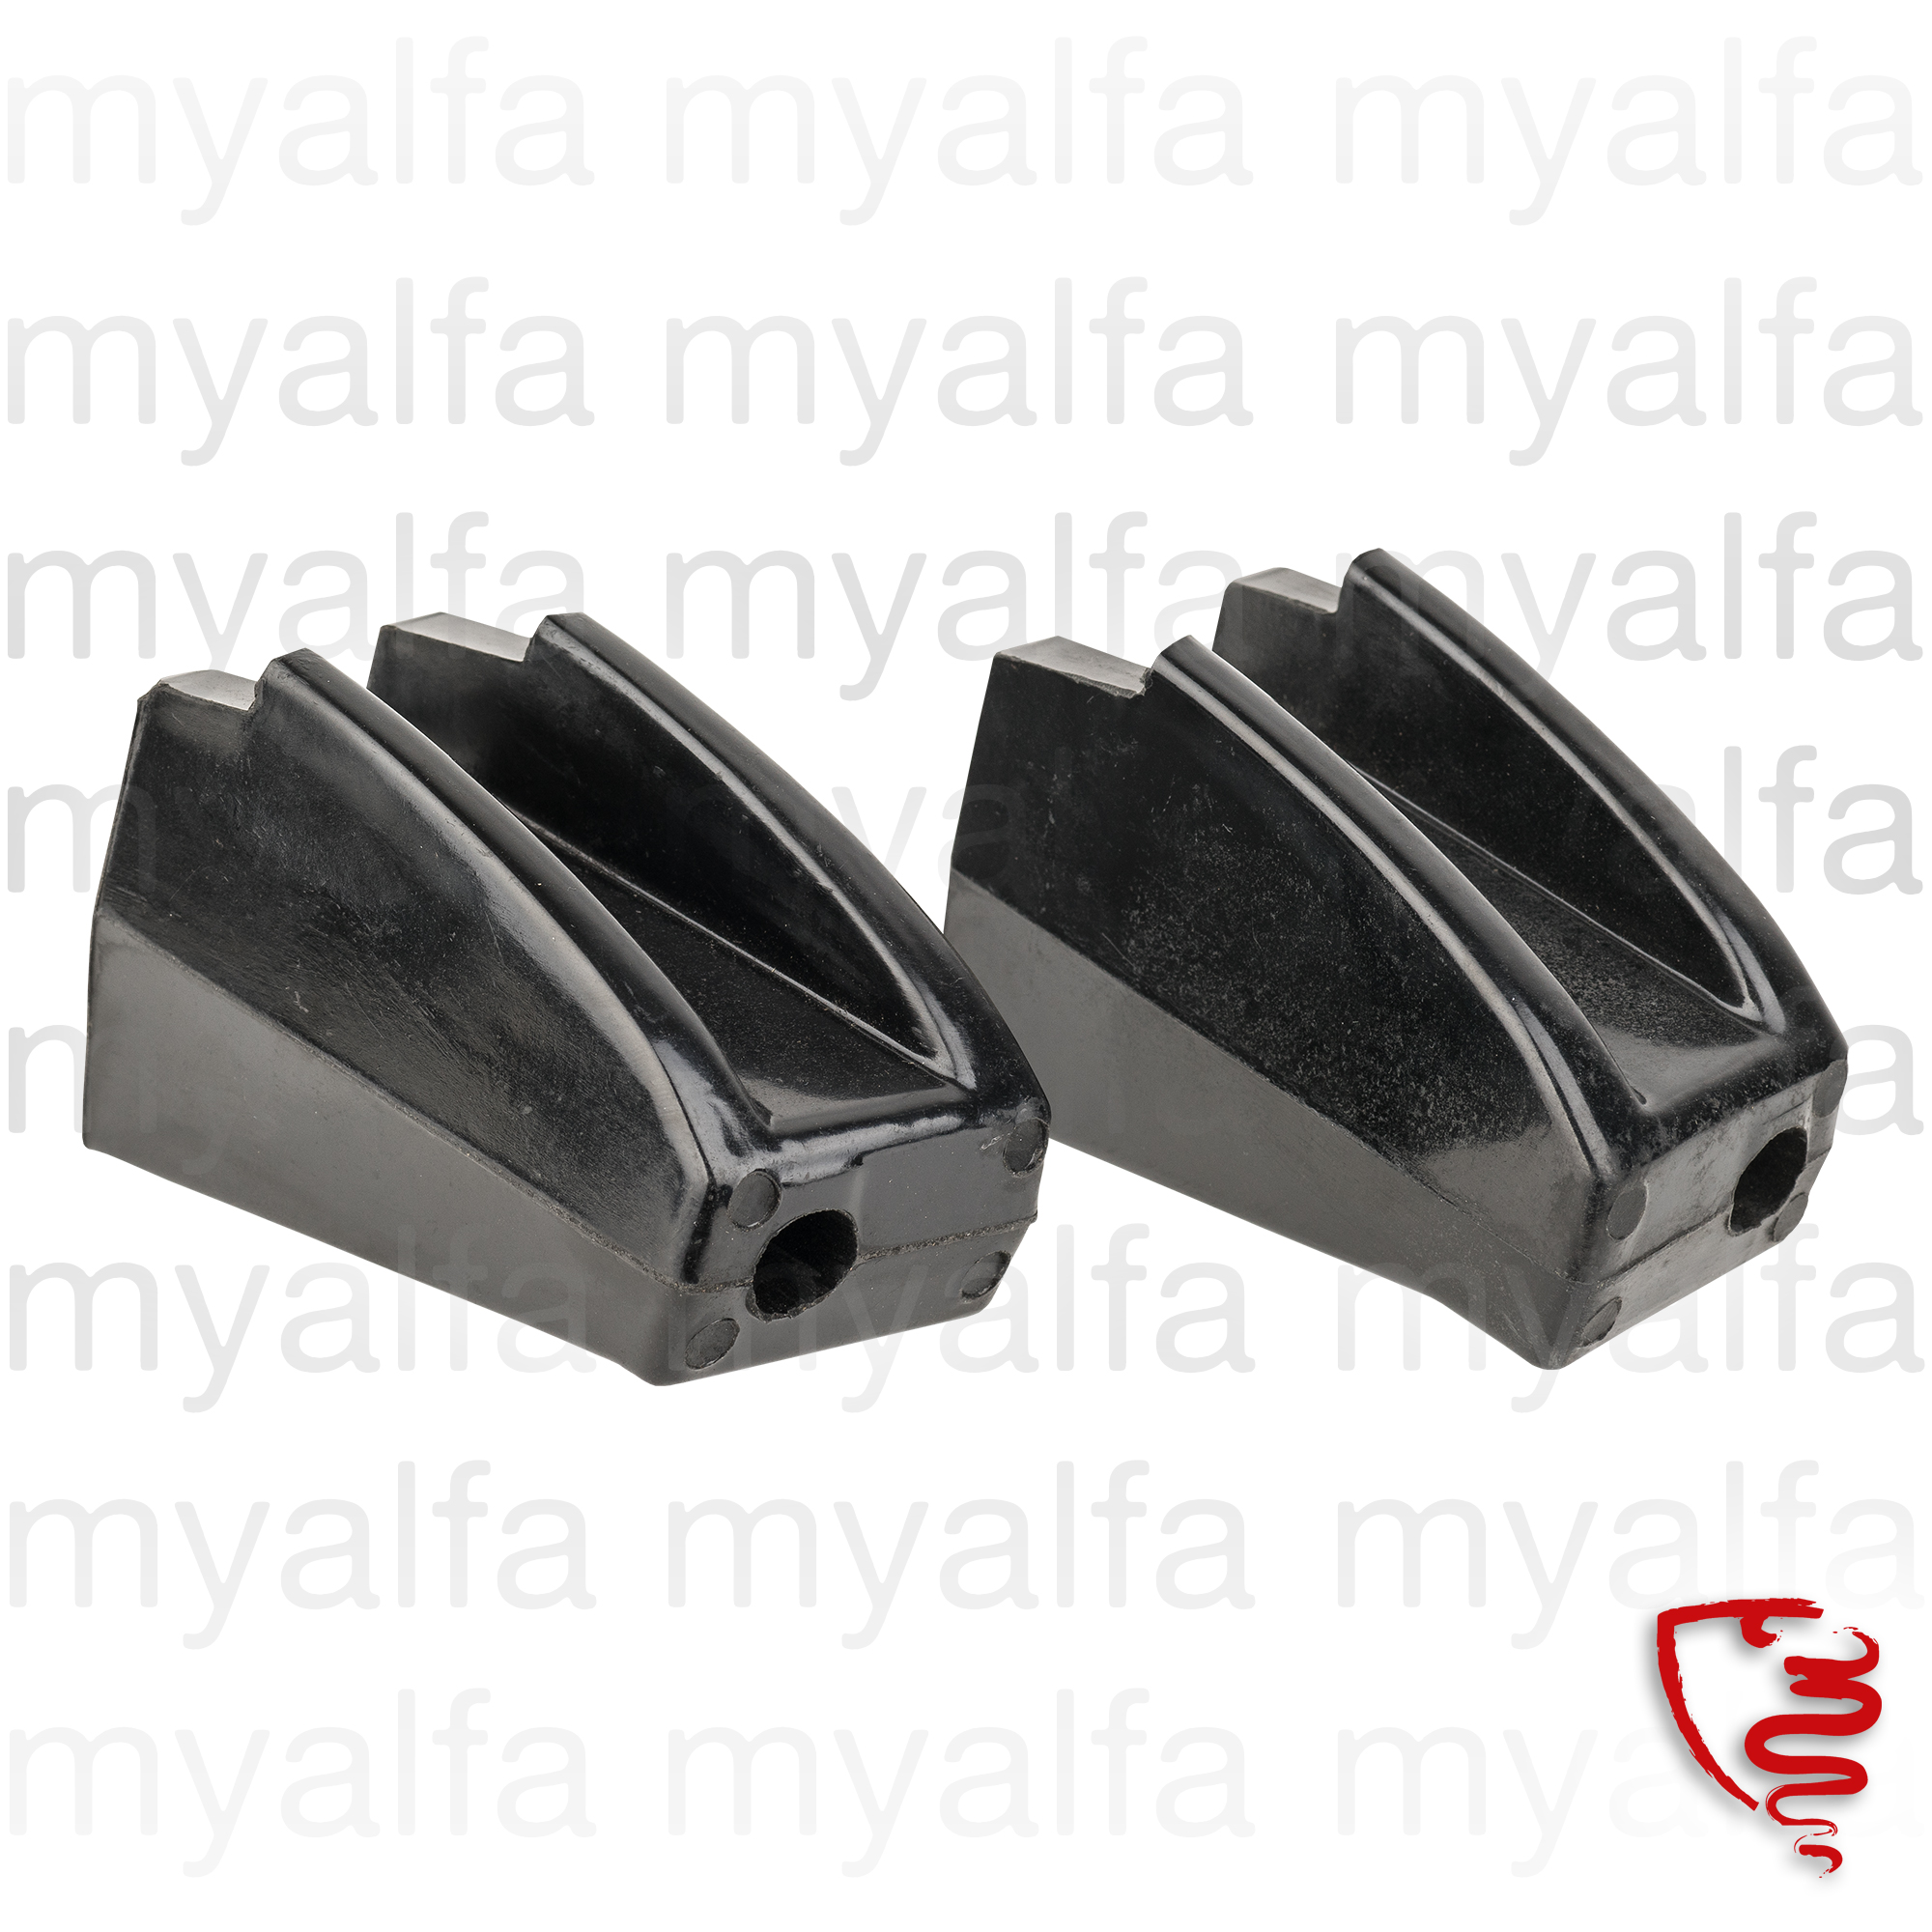 Set of bumper stops / body for 105/115, Coupe, 2000, Body parts, Chrome Parts, Front